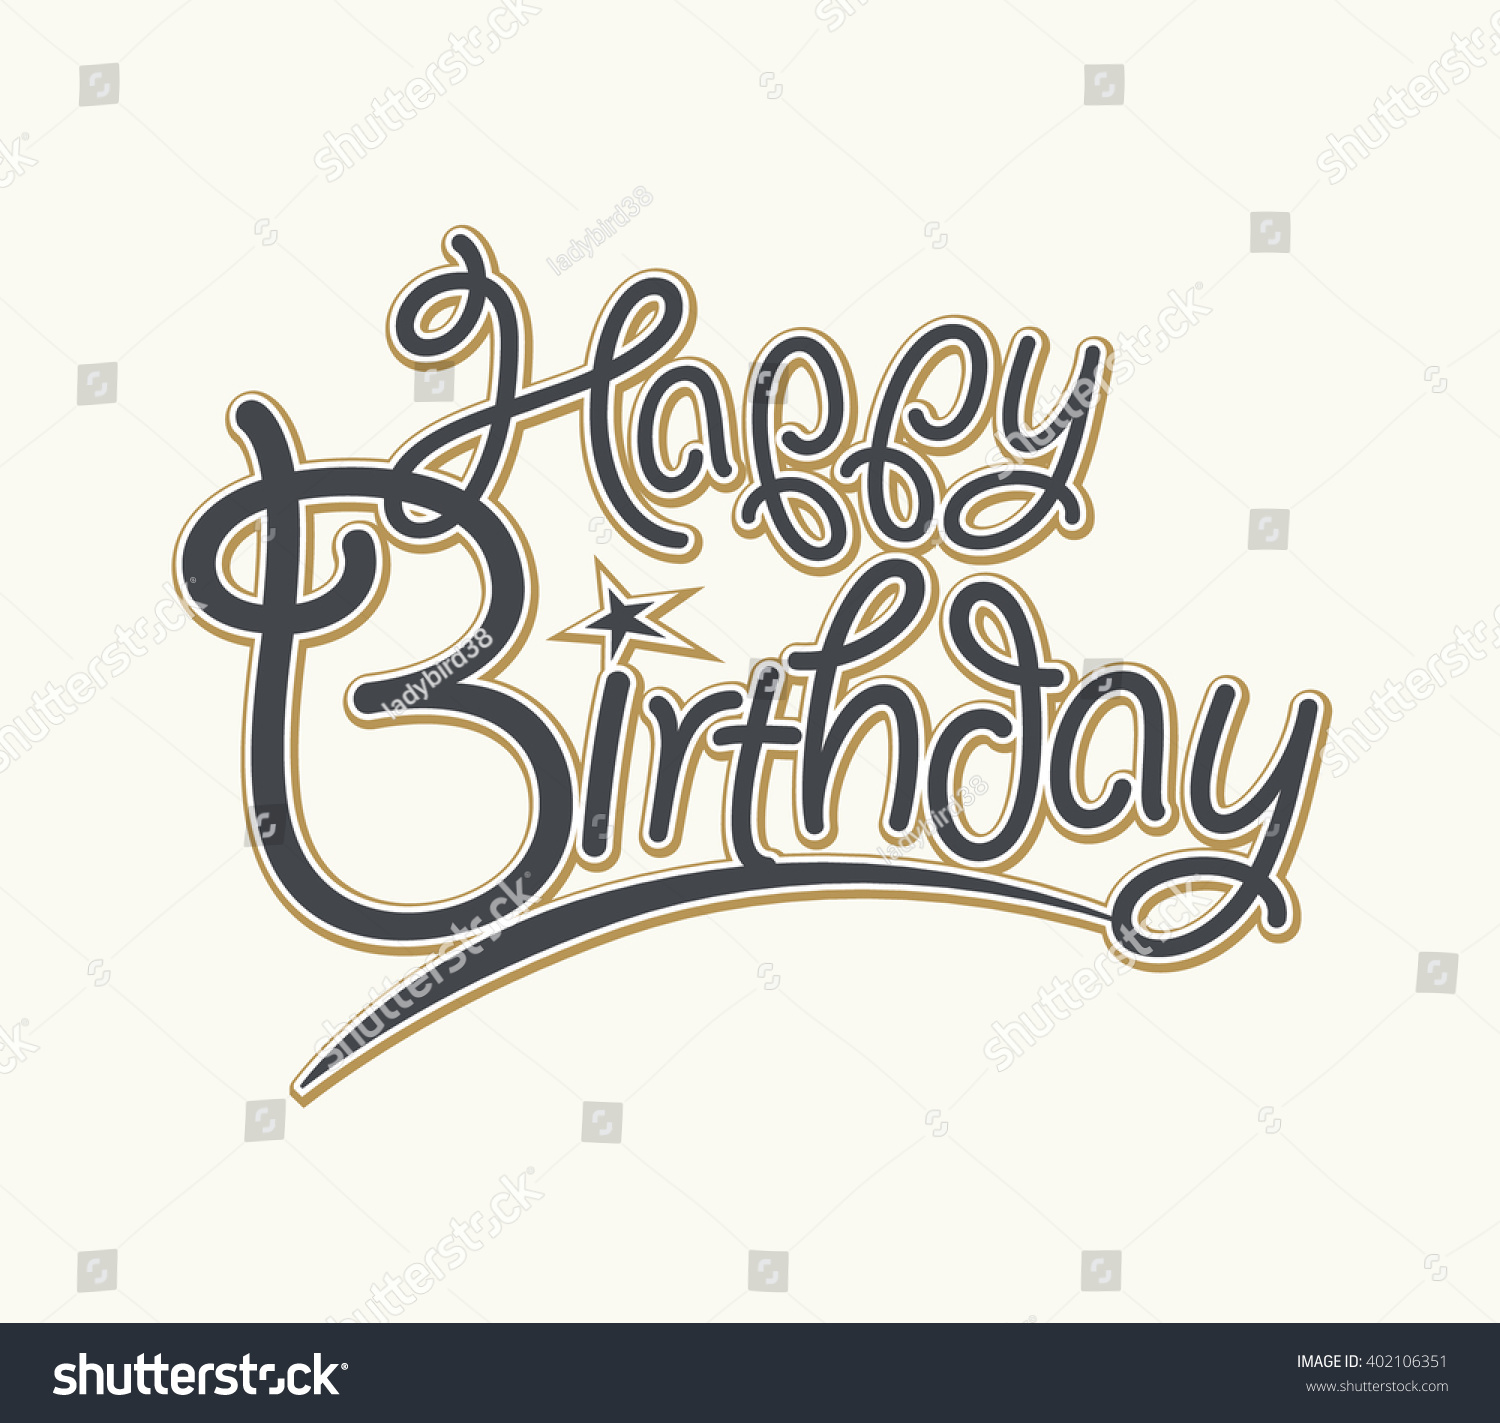 Happy birthday calligraphy brush painted letters vector